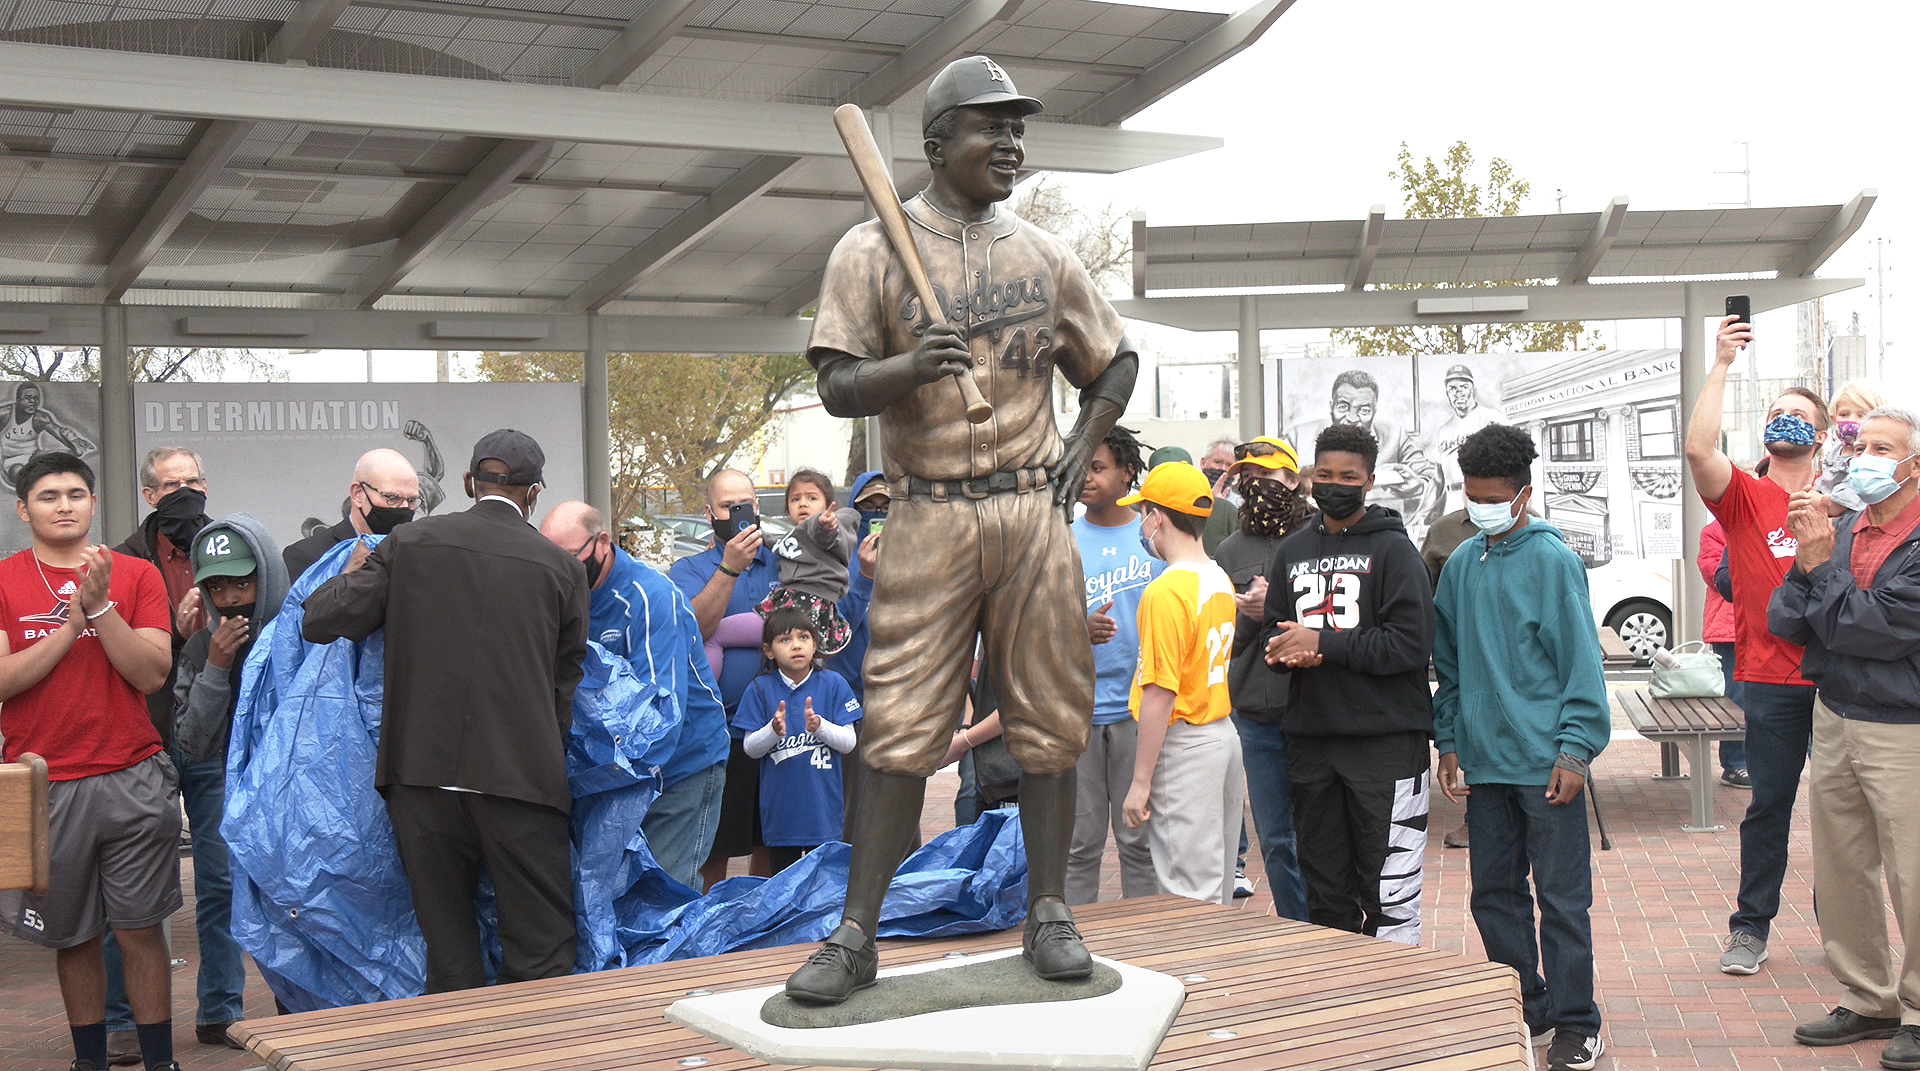 36 Teams in Wichita: How the NBC World Series Led the Way to Baseball Integration Event Image